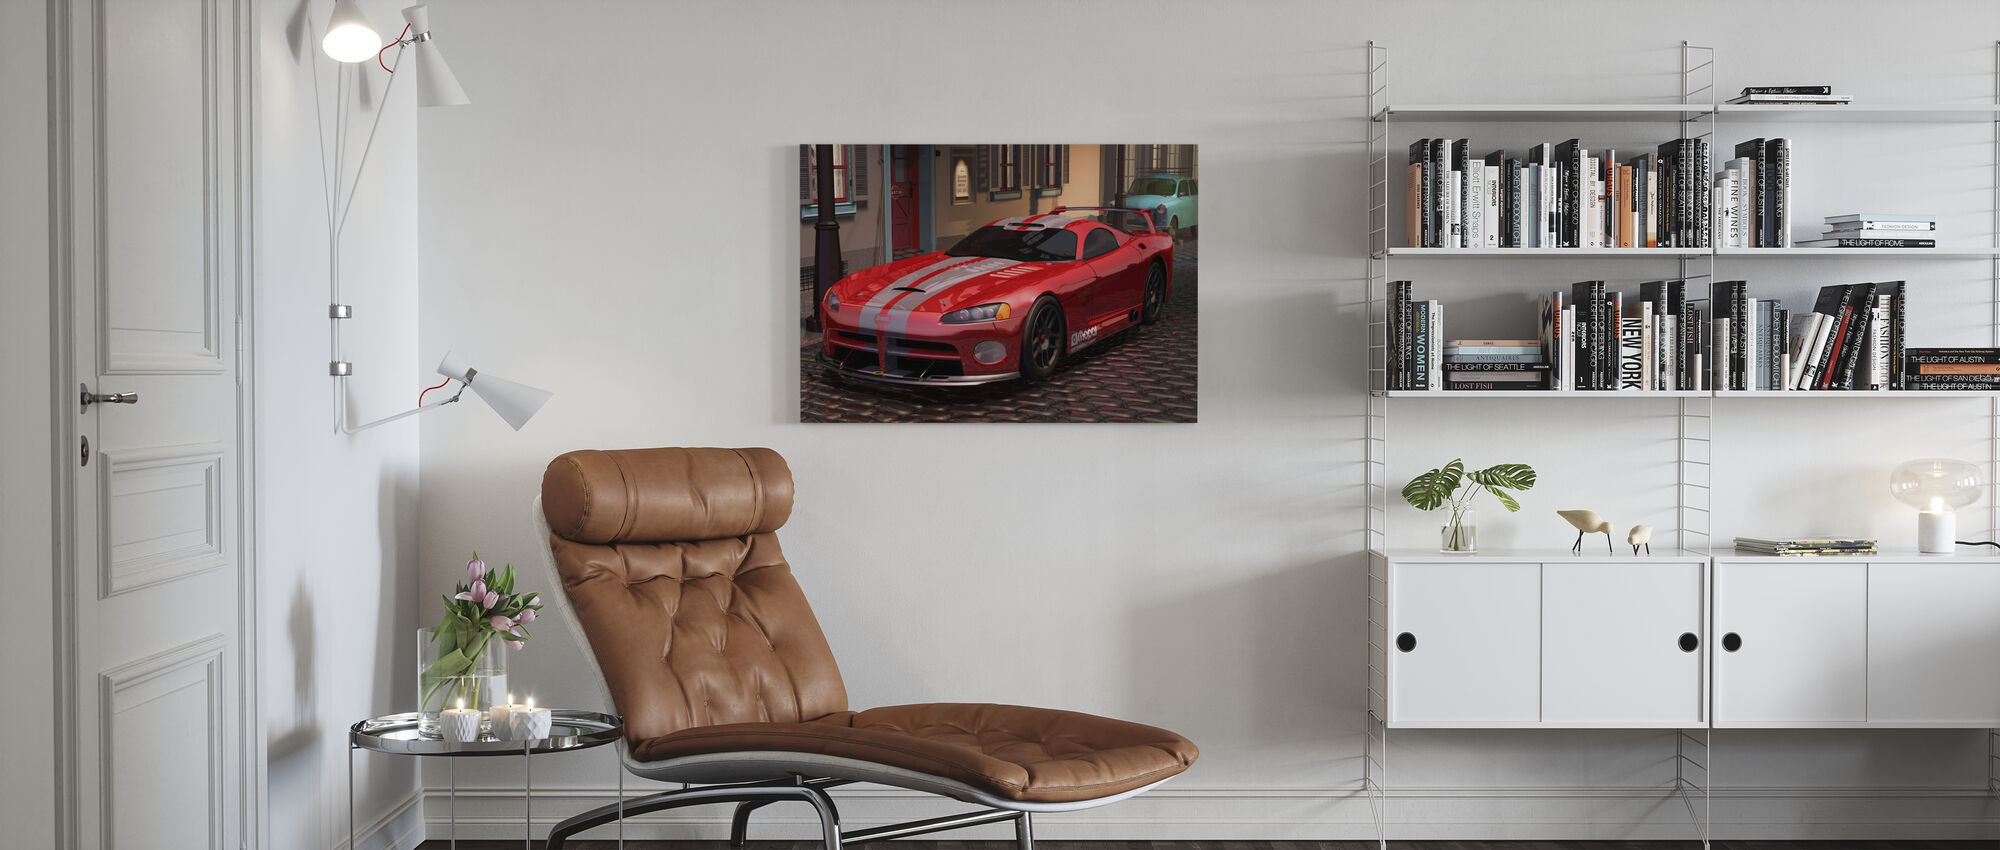 Red Fast Car - Canvas print - Living Room